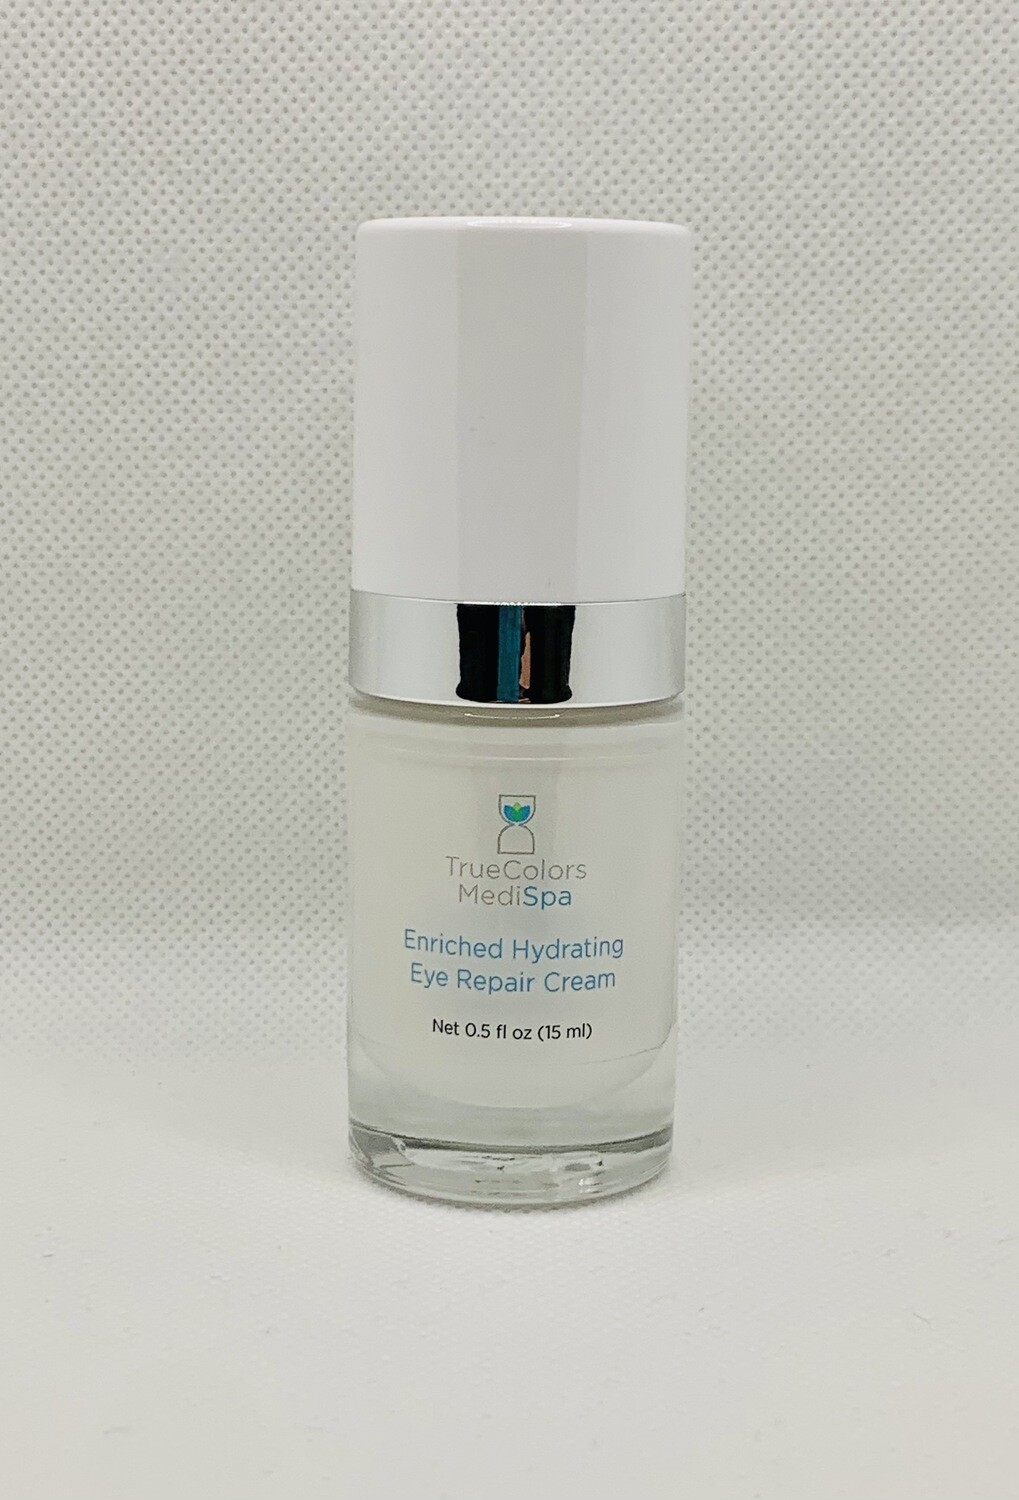 Enriched Hydrating Repair Cream